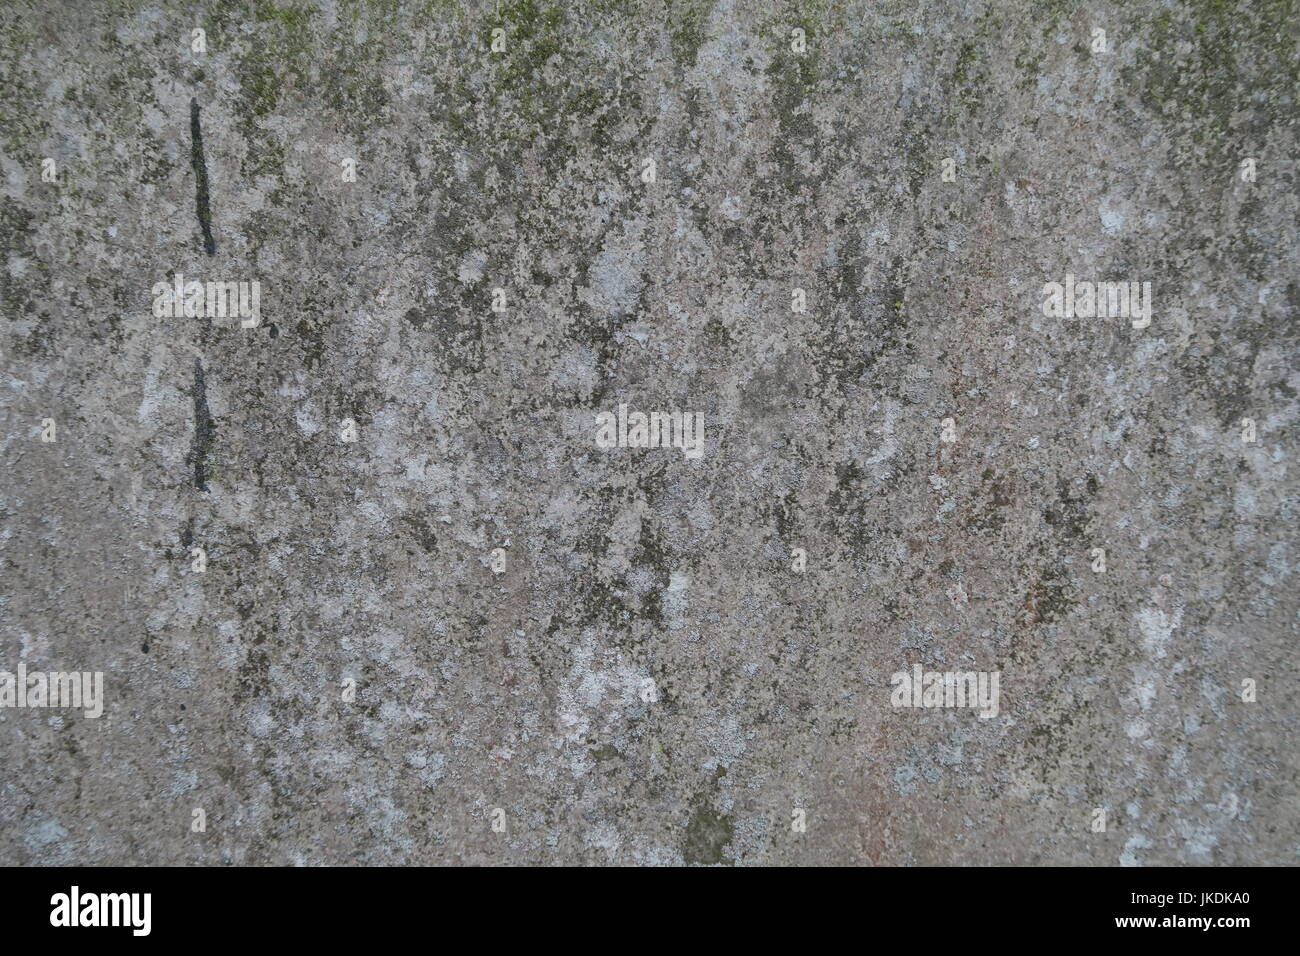 TEXTURE BACKGROUND, NATURAL WEATHERING MOTTLED - Stock Image